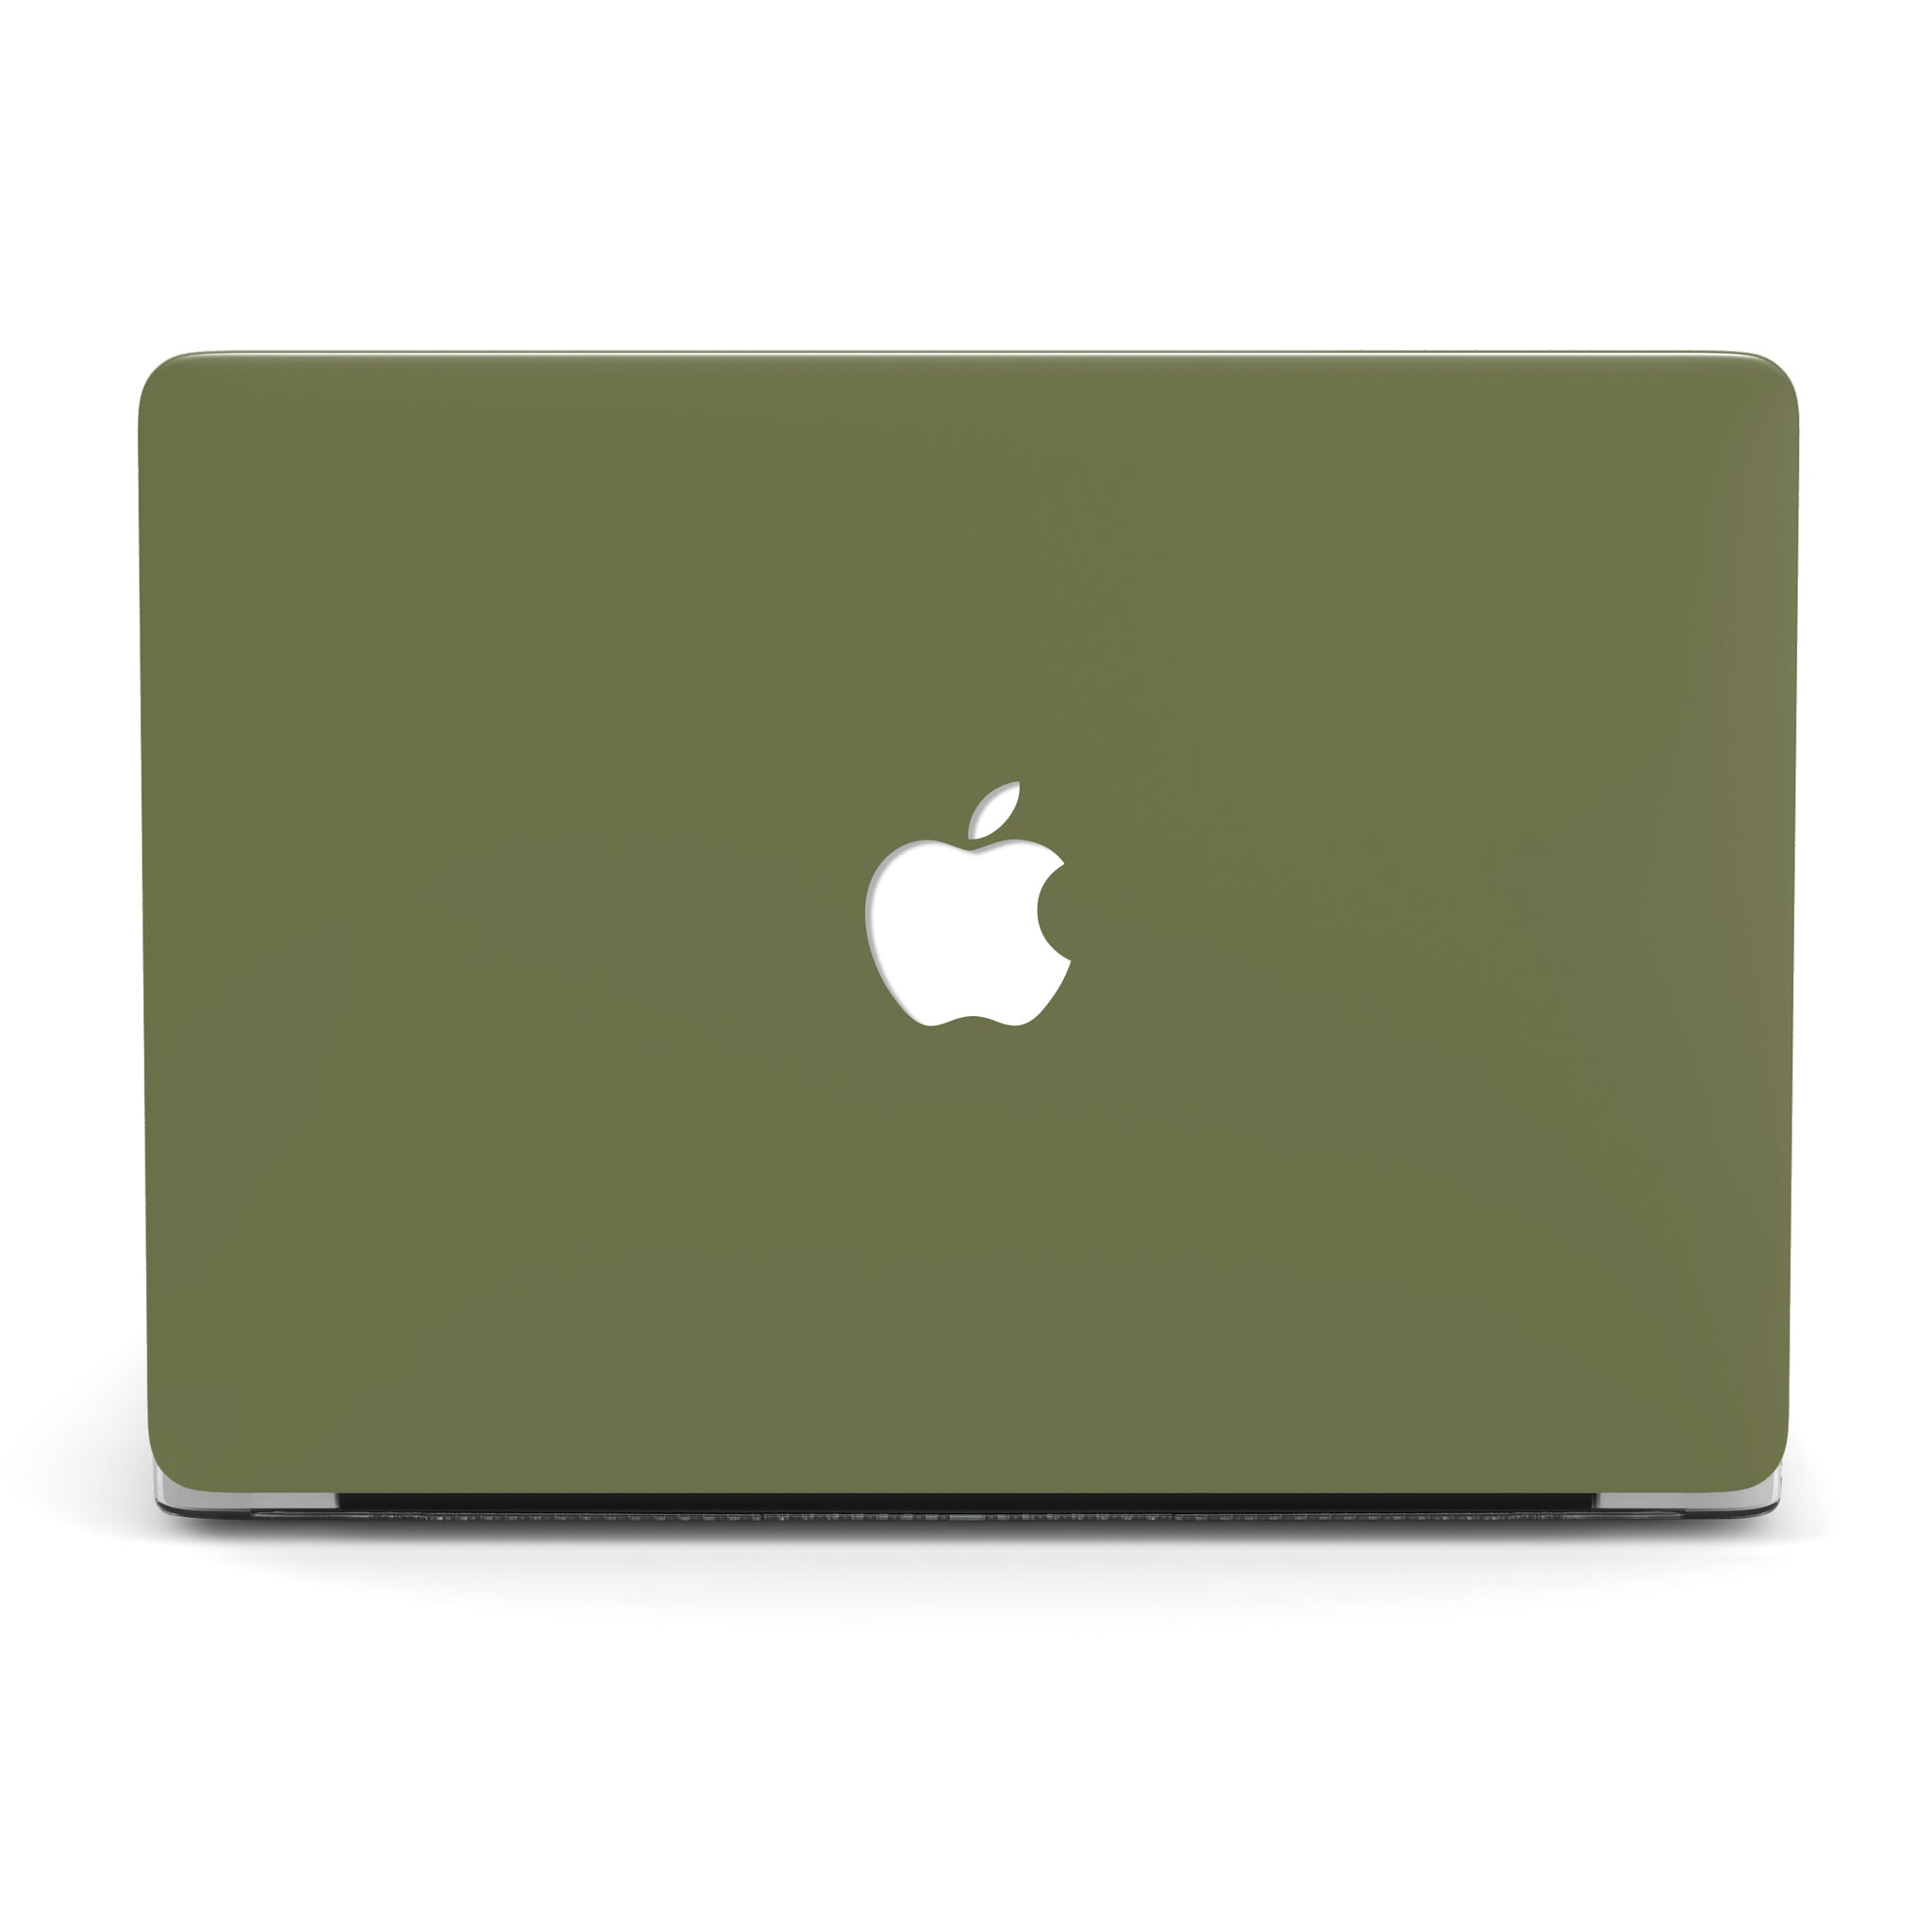 OLIVE GREEN MACBOOK CASE